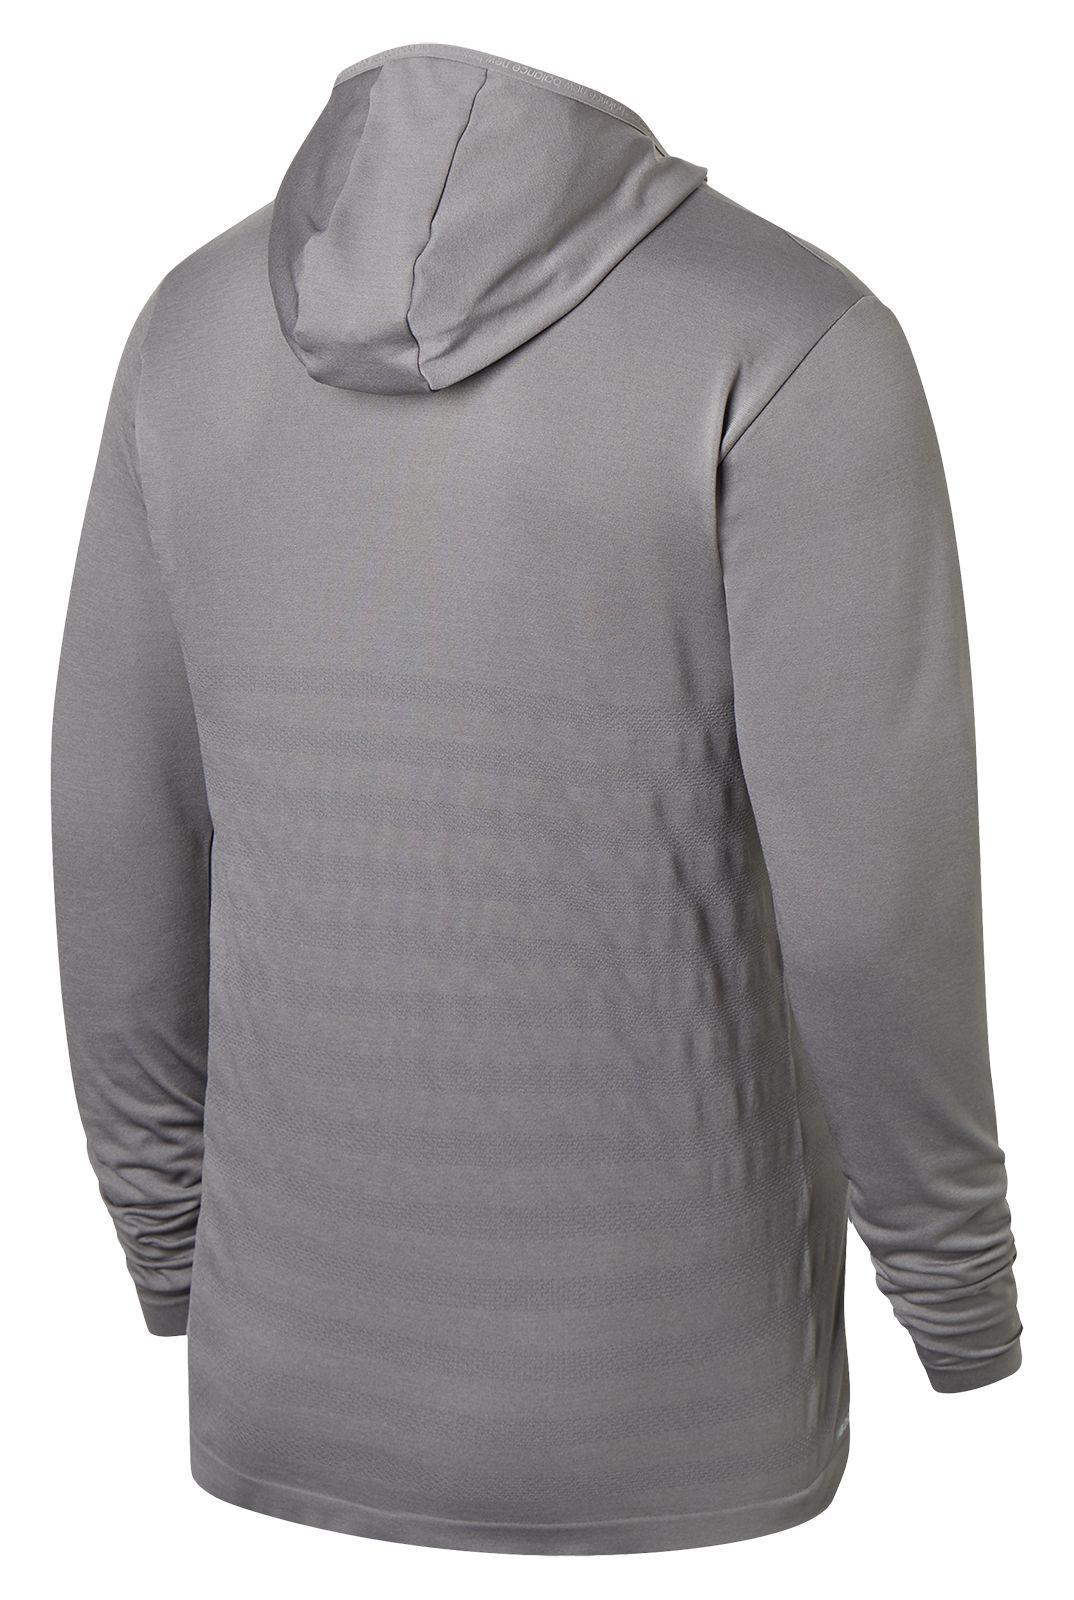 ... Gray Liverpool Fc Elite Leisure Seamless Hooded Mid-layer for Men -.  View fullscreen 16fe830ac